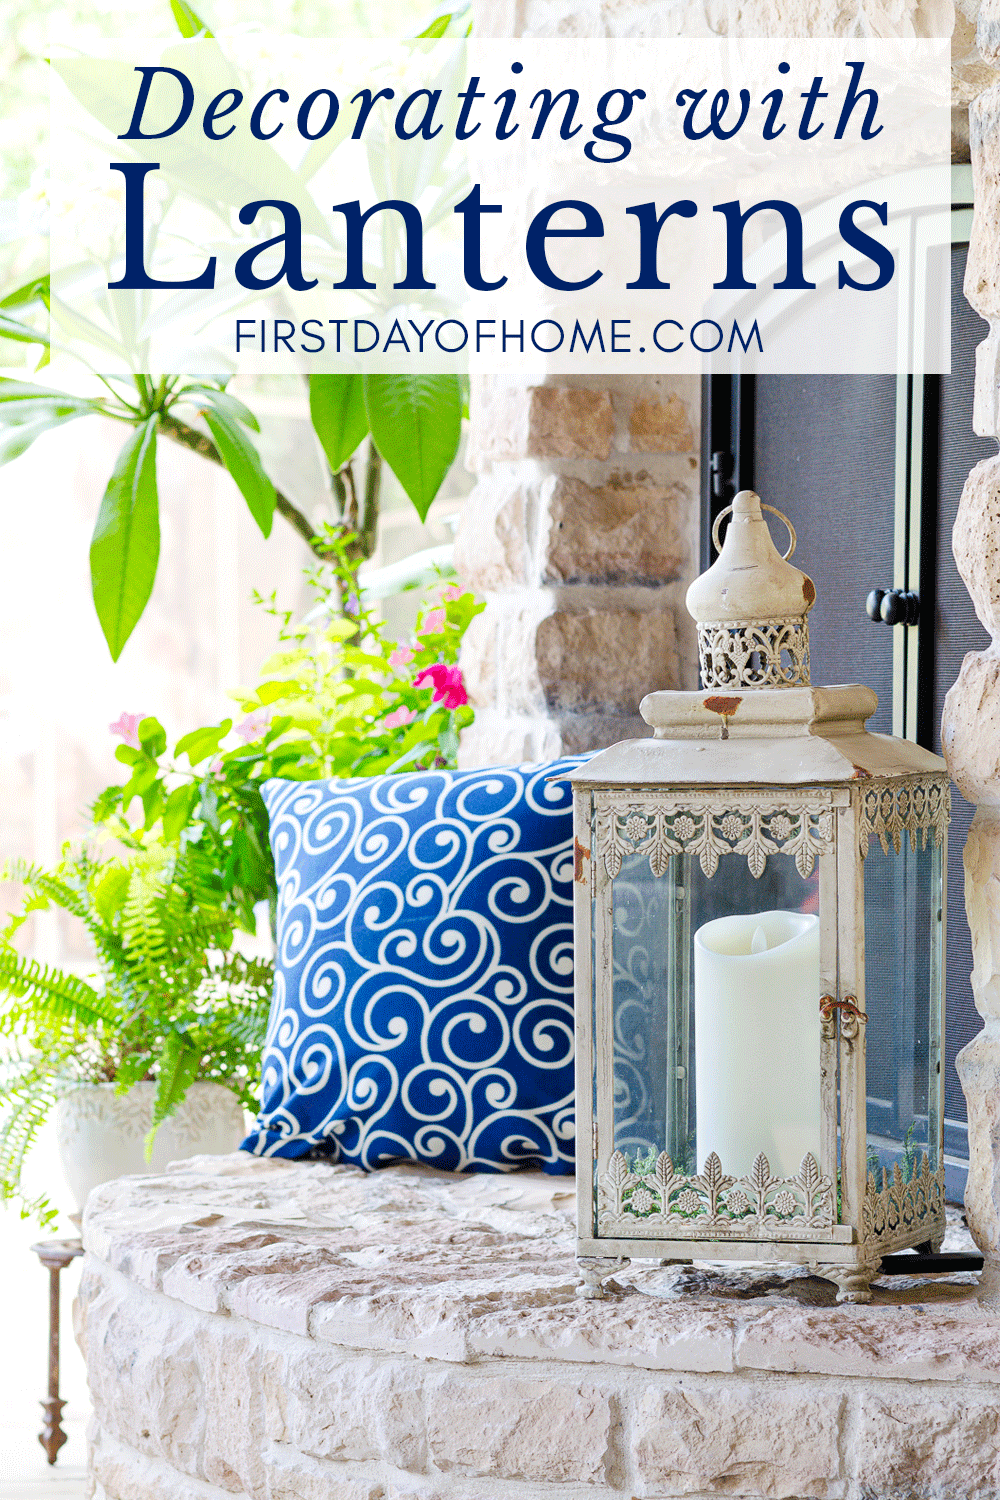 Lantern decorating ideas for outdoors